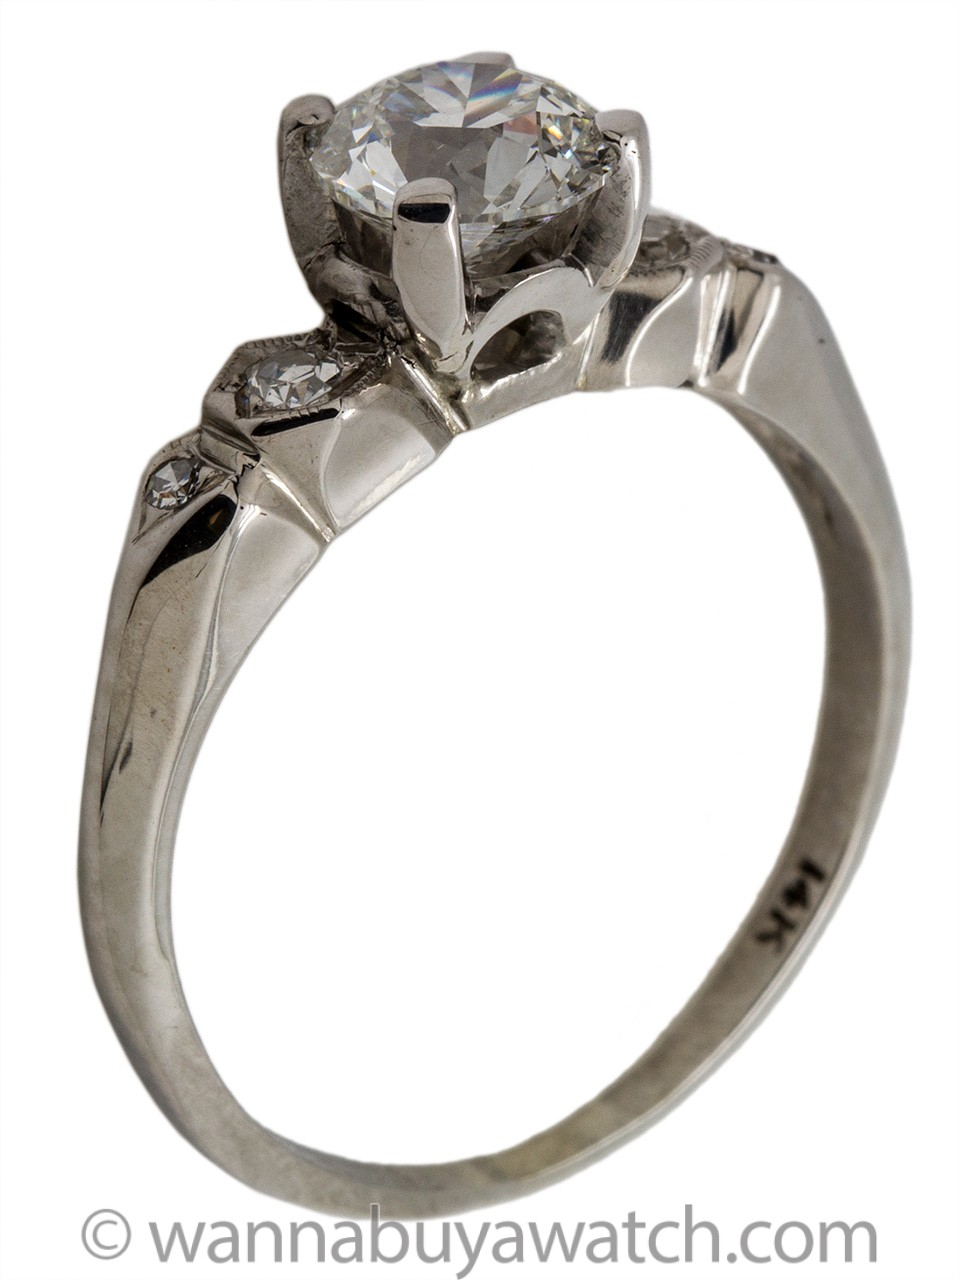 Vintage 14KWG Engagement Ring 0.96ct F-VS2 Old European Cut Diamond circa 1930s